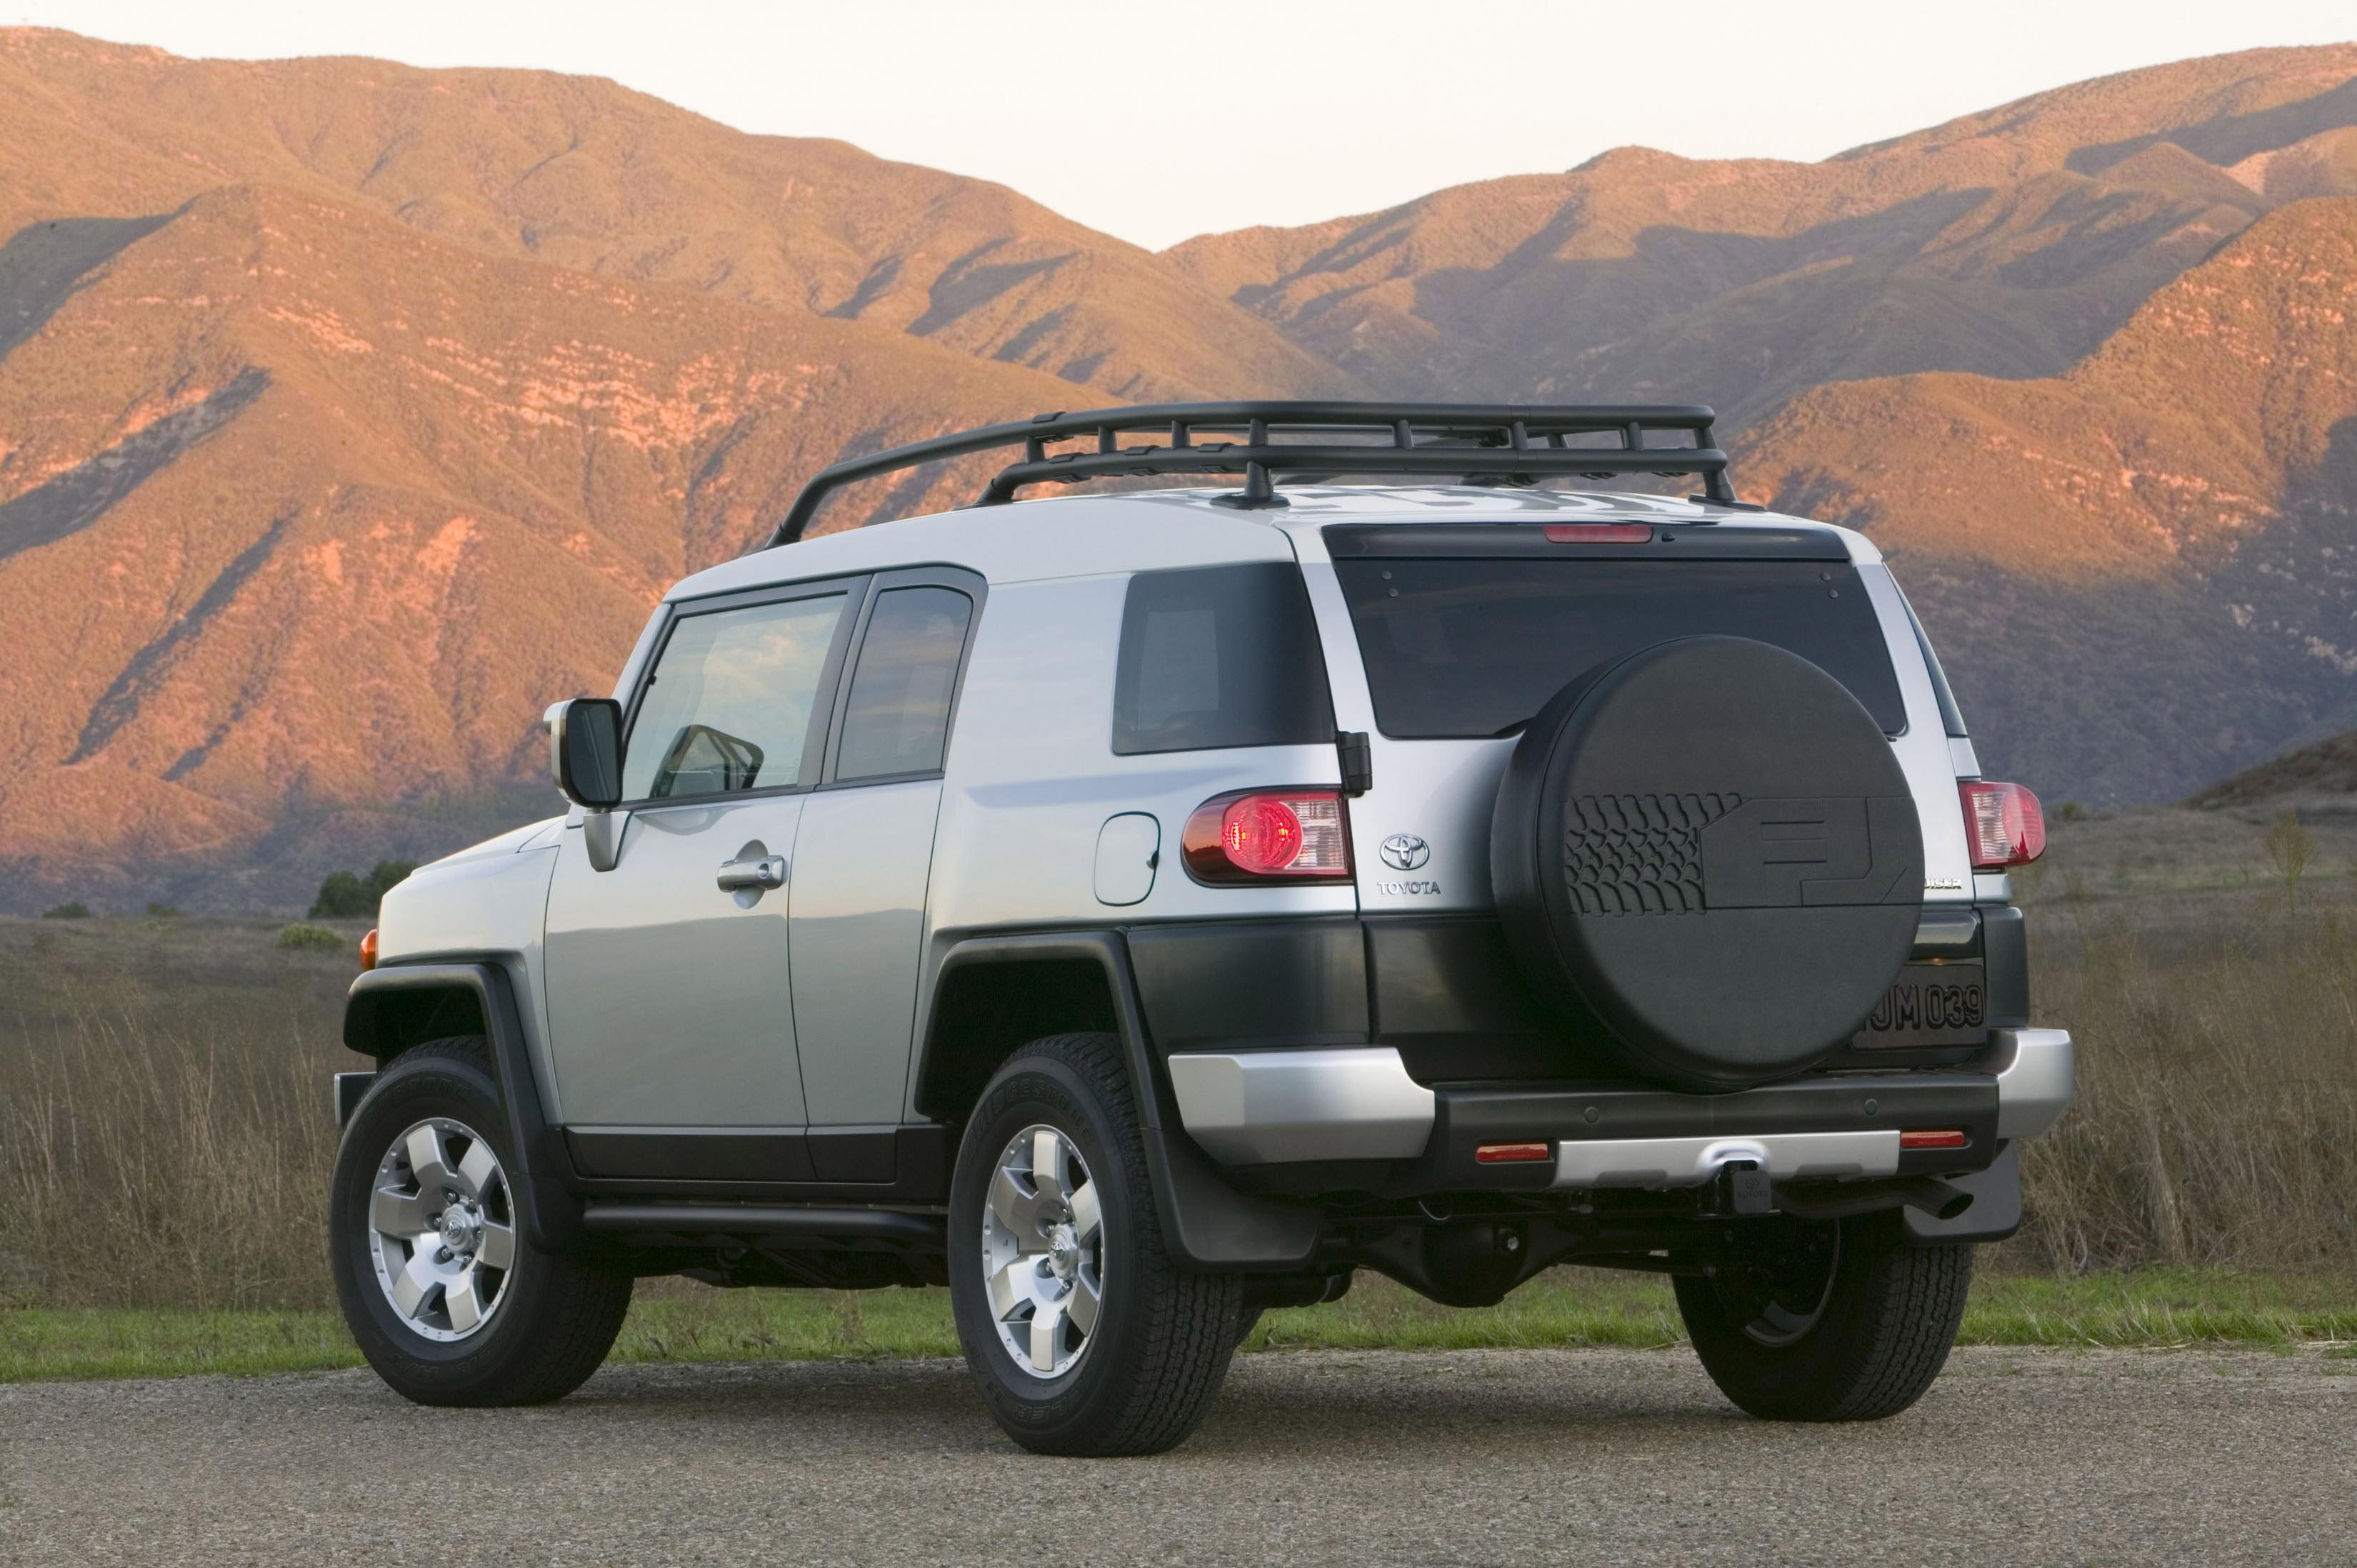 2008 toyota fj cruiser information and photos zombiedrive. Black Bedroom Furniture Sets. Home Design Ideas